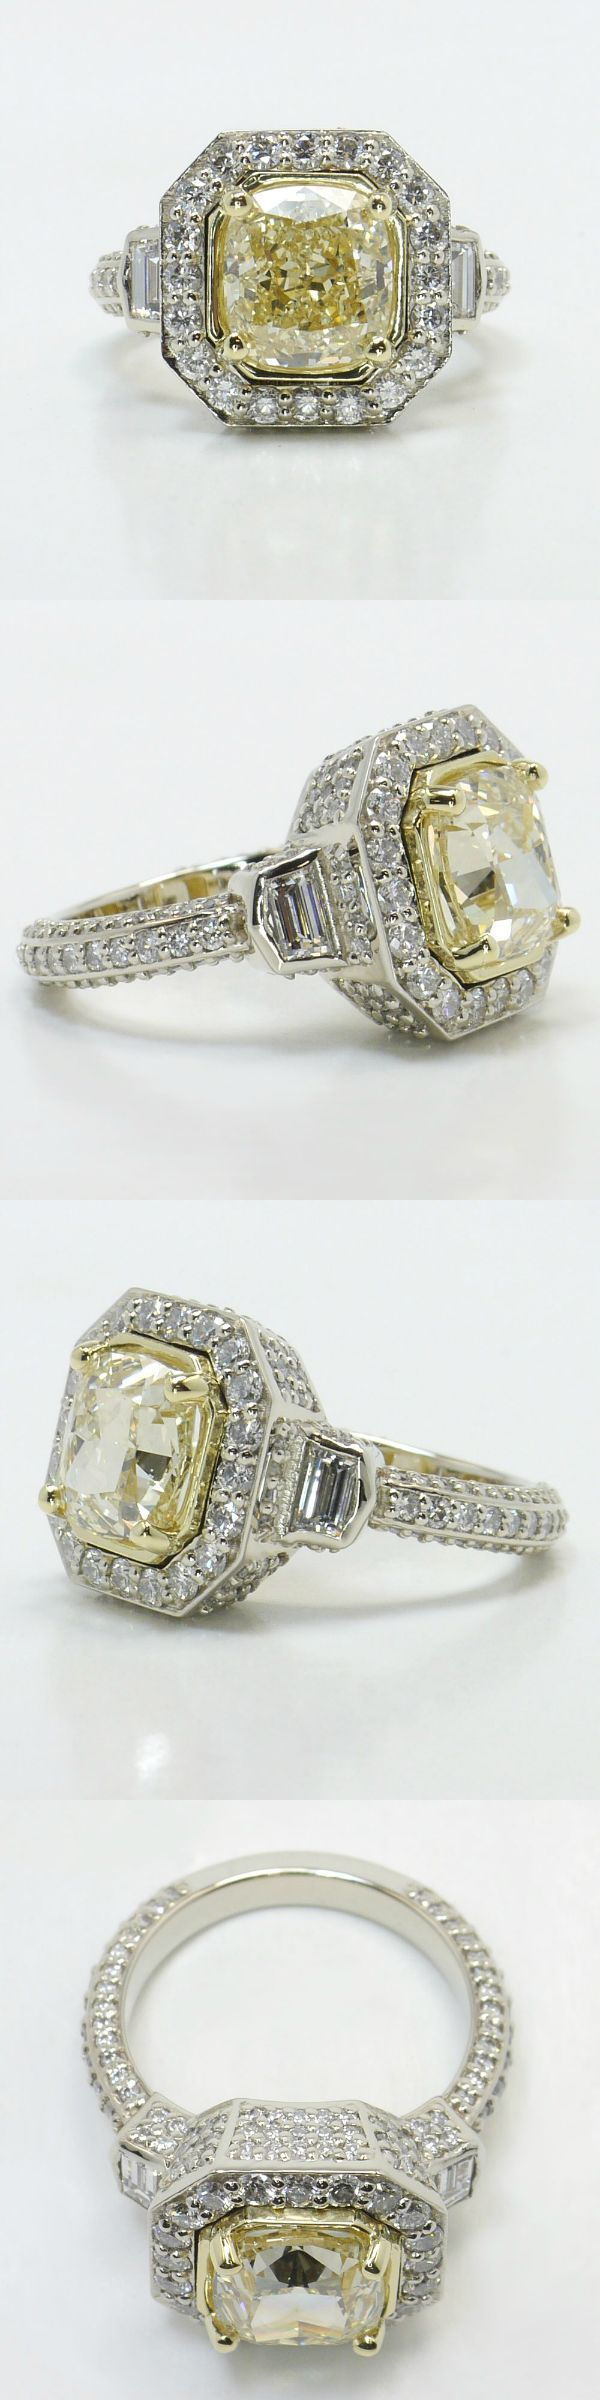 Diamond Encrusted Three Stone Halo Ring! Cushion 3.05 Ctw. Color: W Clarity: VS1 Cut: Excellent Certification: GIA Diamond/Gem Cost: $12,350 Custom Diamond Ring Setting Metal: 18k White Gold with Yellow Gold Inlay Side Shape: Round/Trapezoid Side Carat: 1.55 Side Color: G-H Side Clarity: VS2 Side Cut: Ideal Setting Cost: $3,650 Total Cost: $12,350 www.brilliance.com